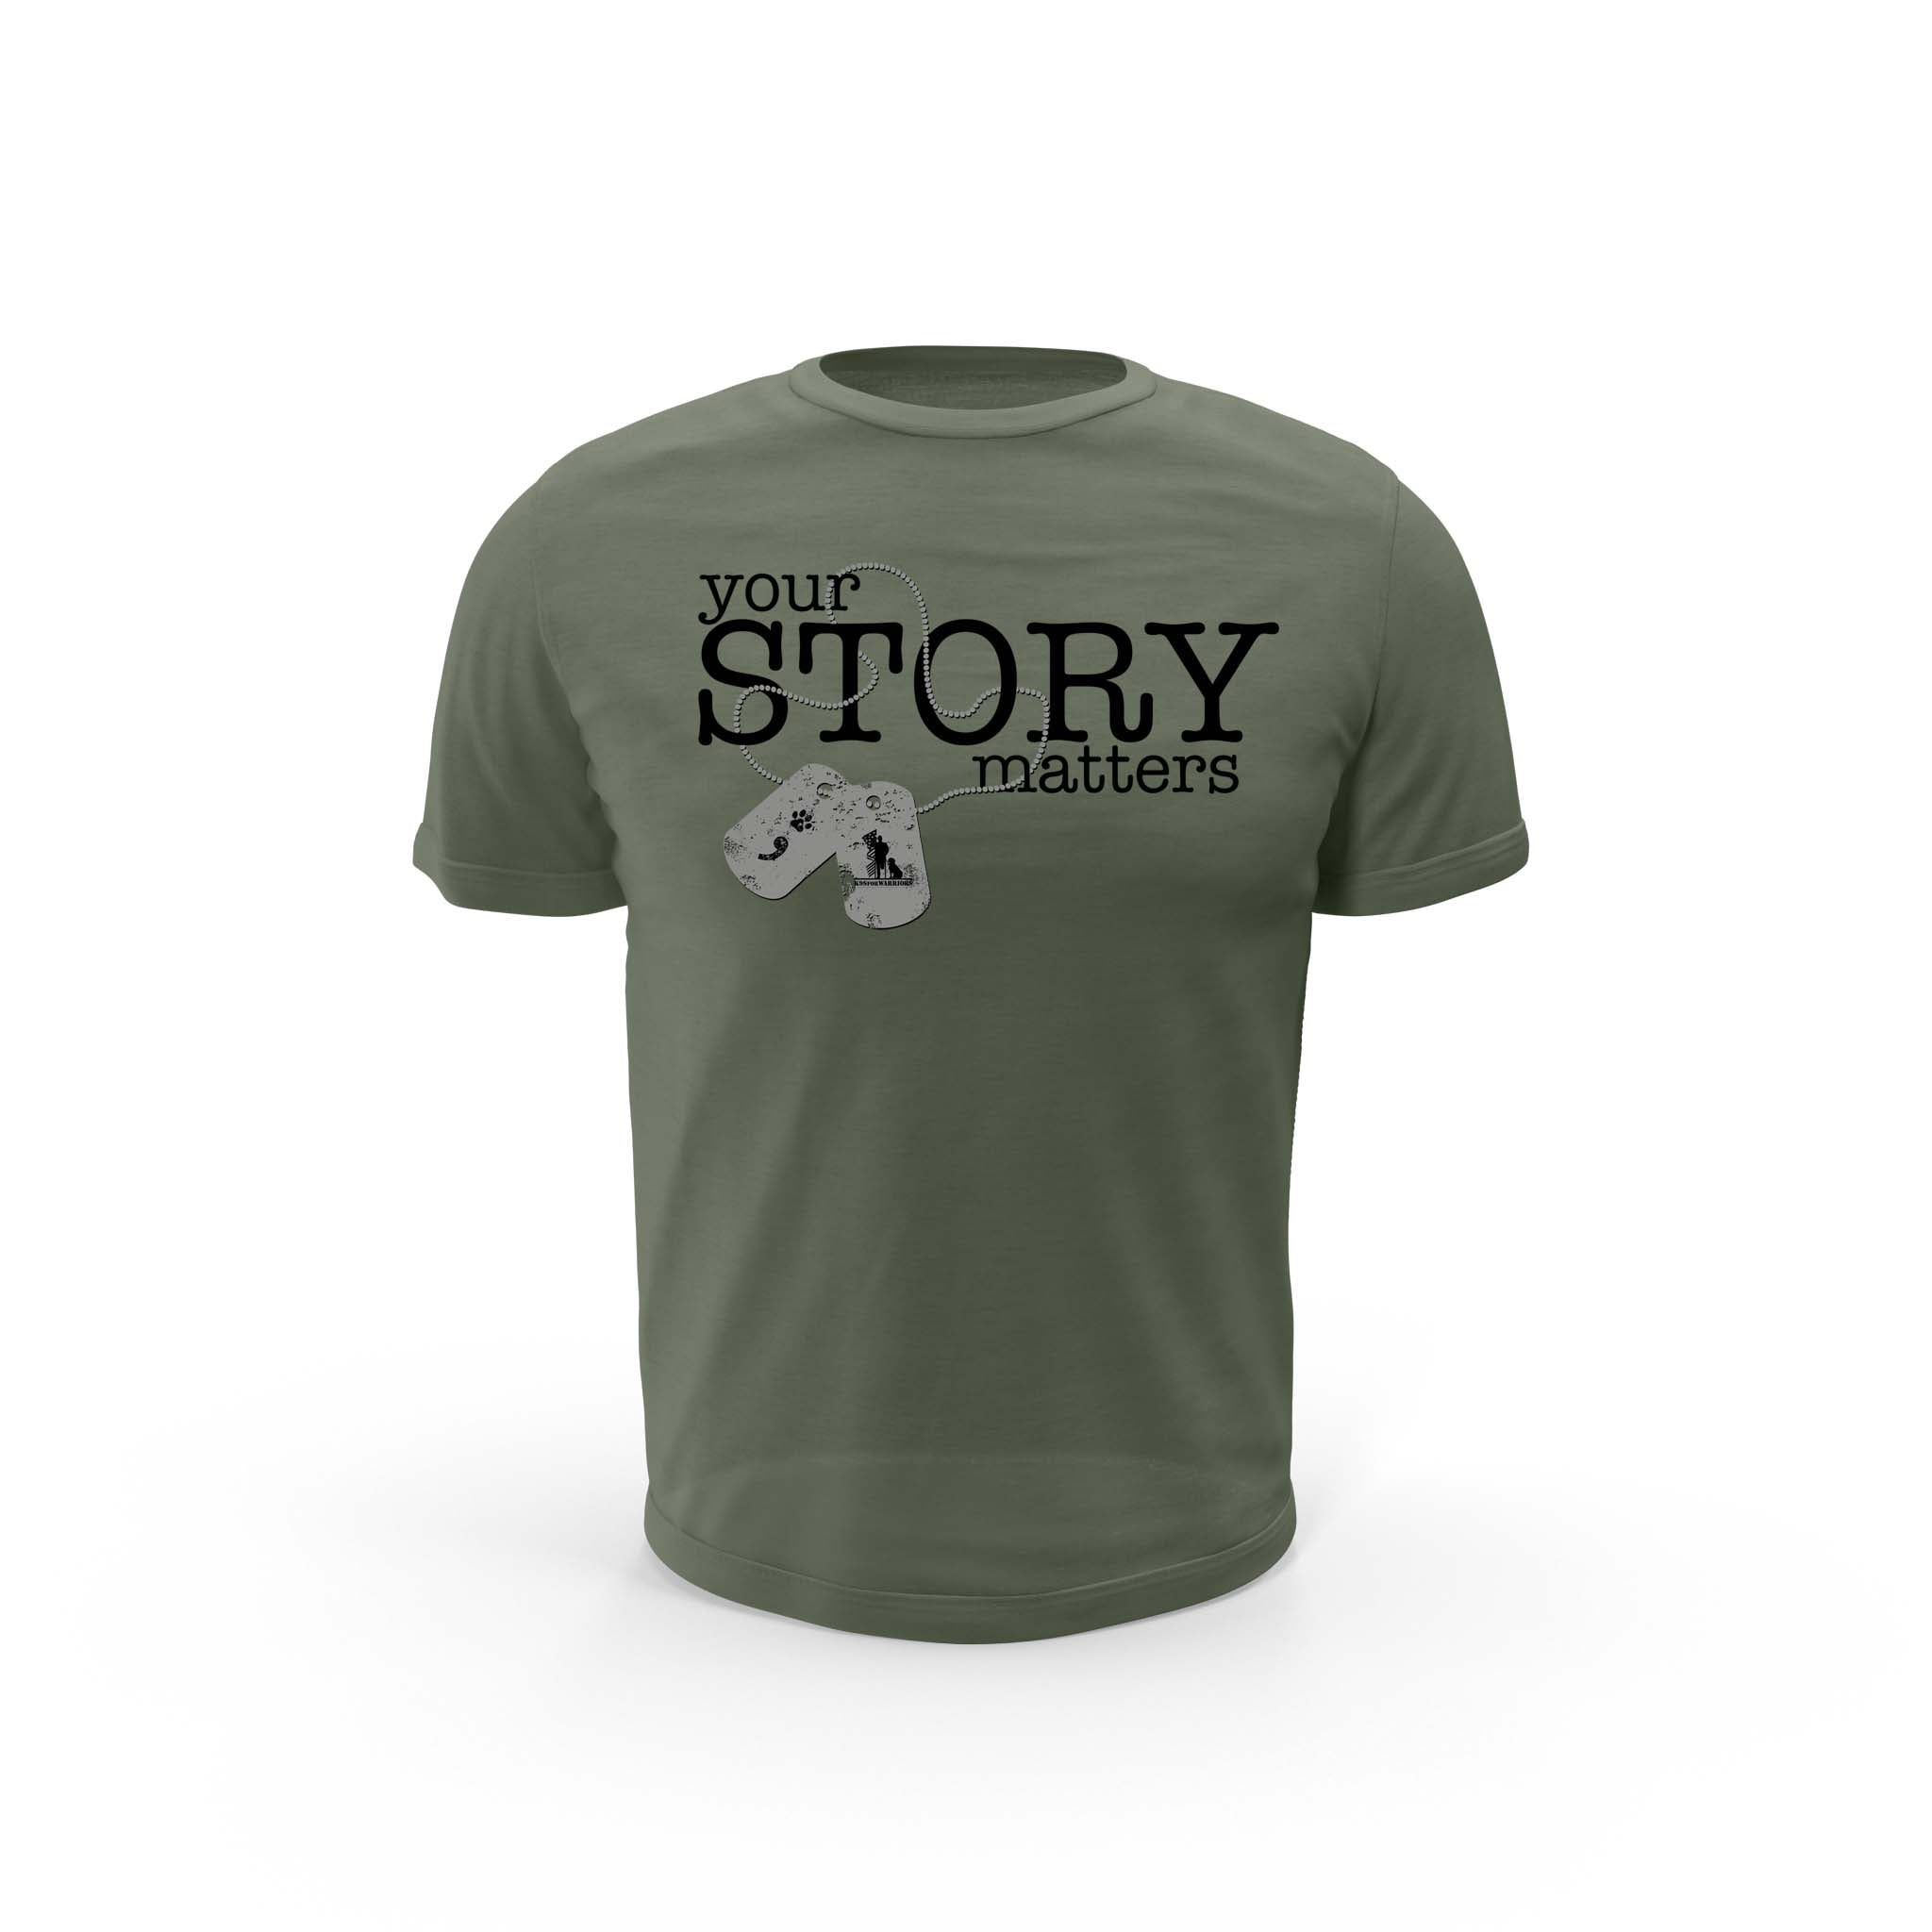 Your Story Matters Shirt